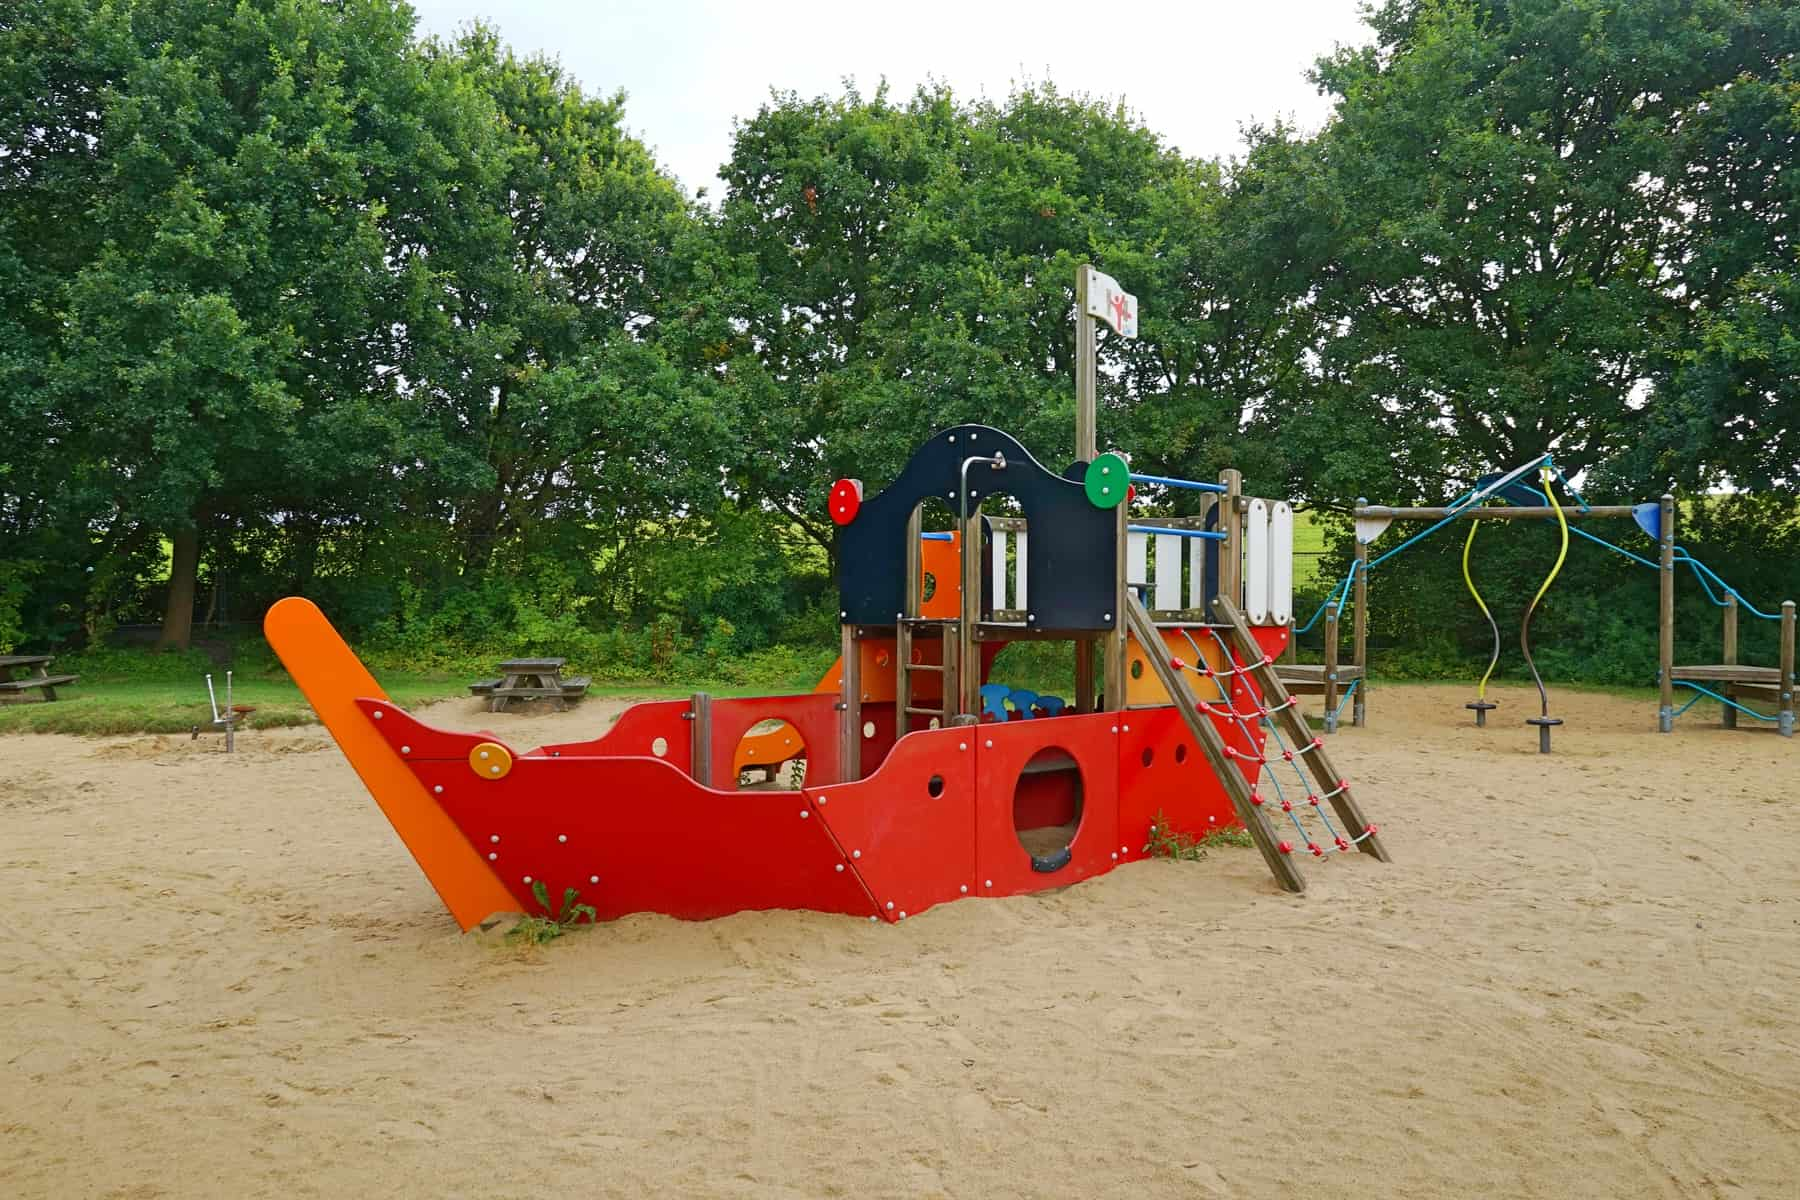 Outdoor Kinder Pirate Playground Cuxhaven Cuxhaven With Kids Recommended By The